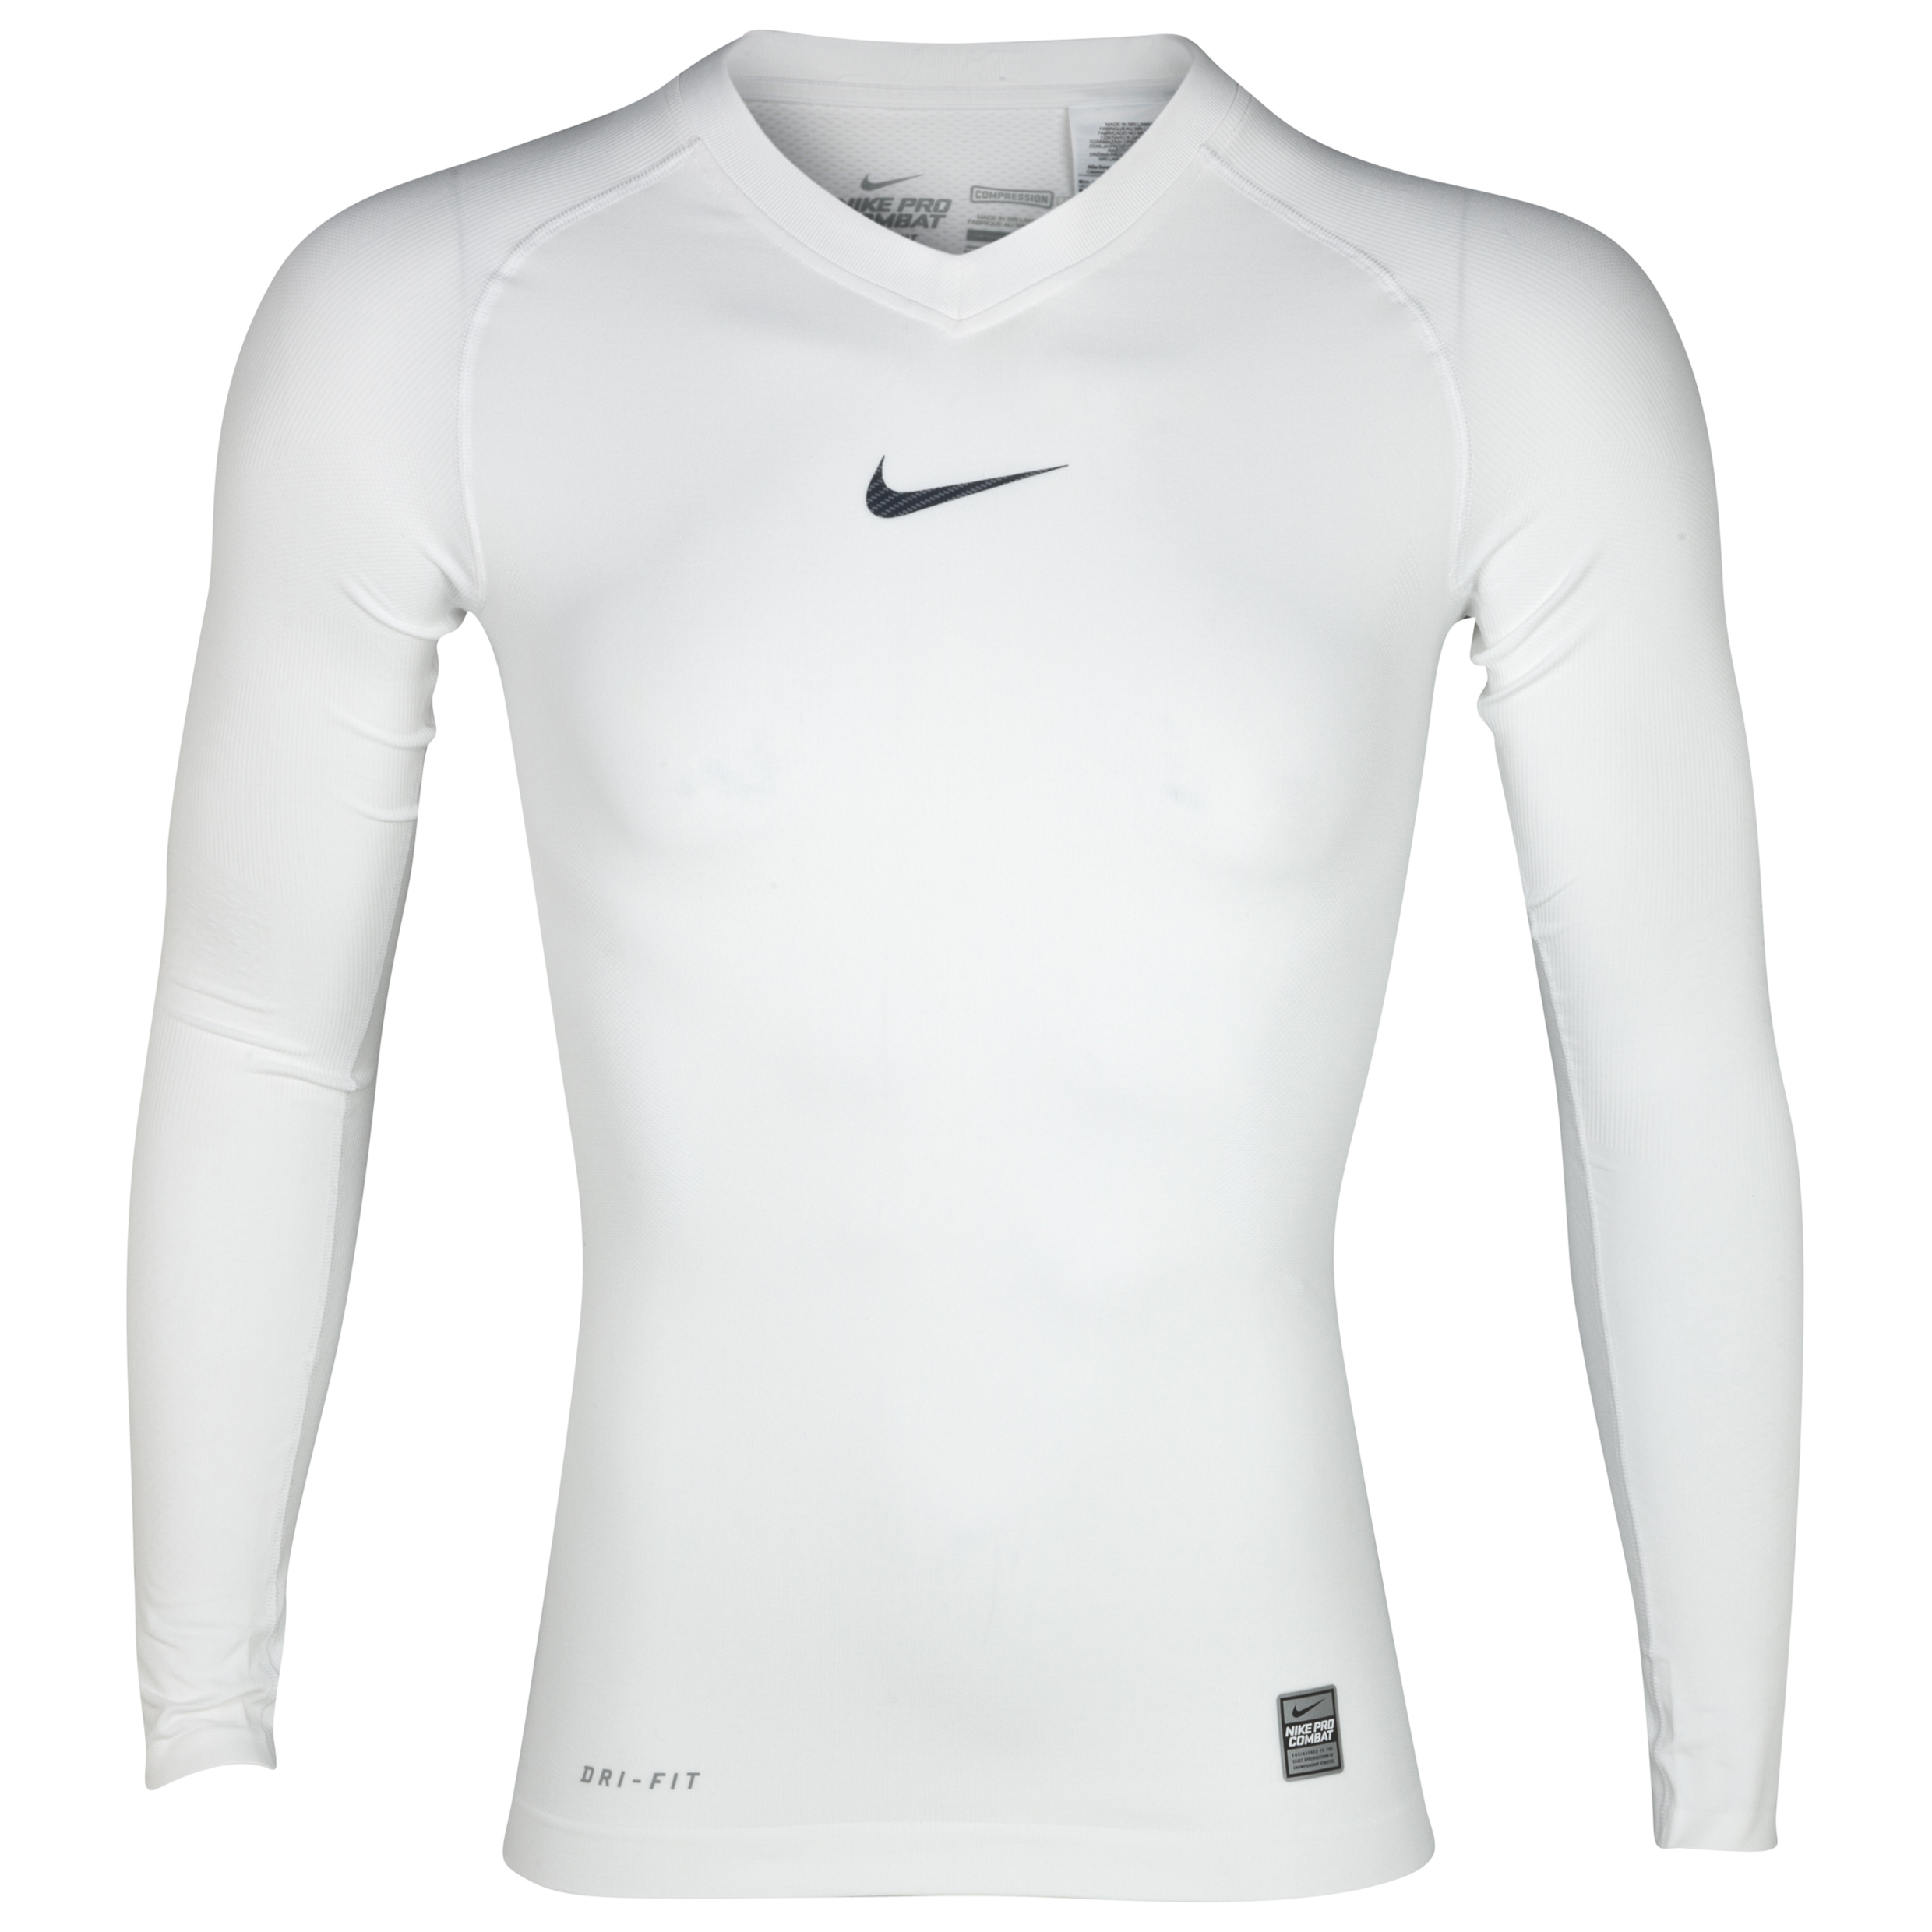 Nike Pro Combat Hypercool Vapor Top - White - Long Sleeve